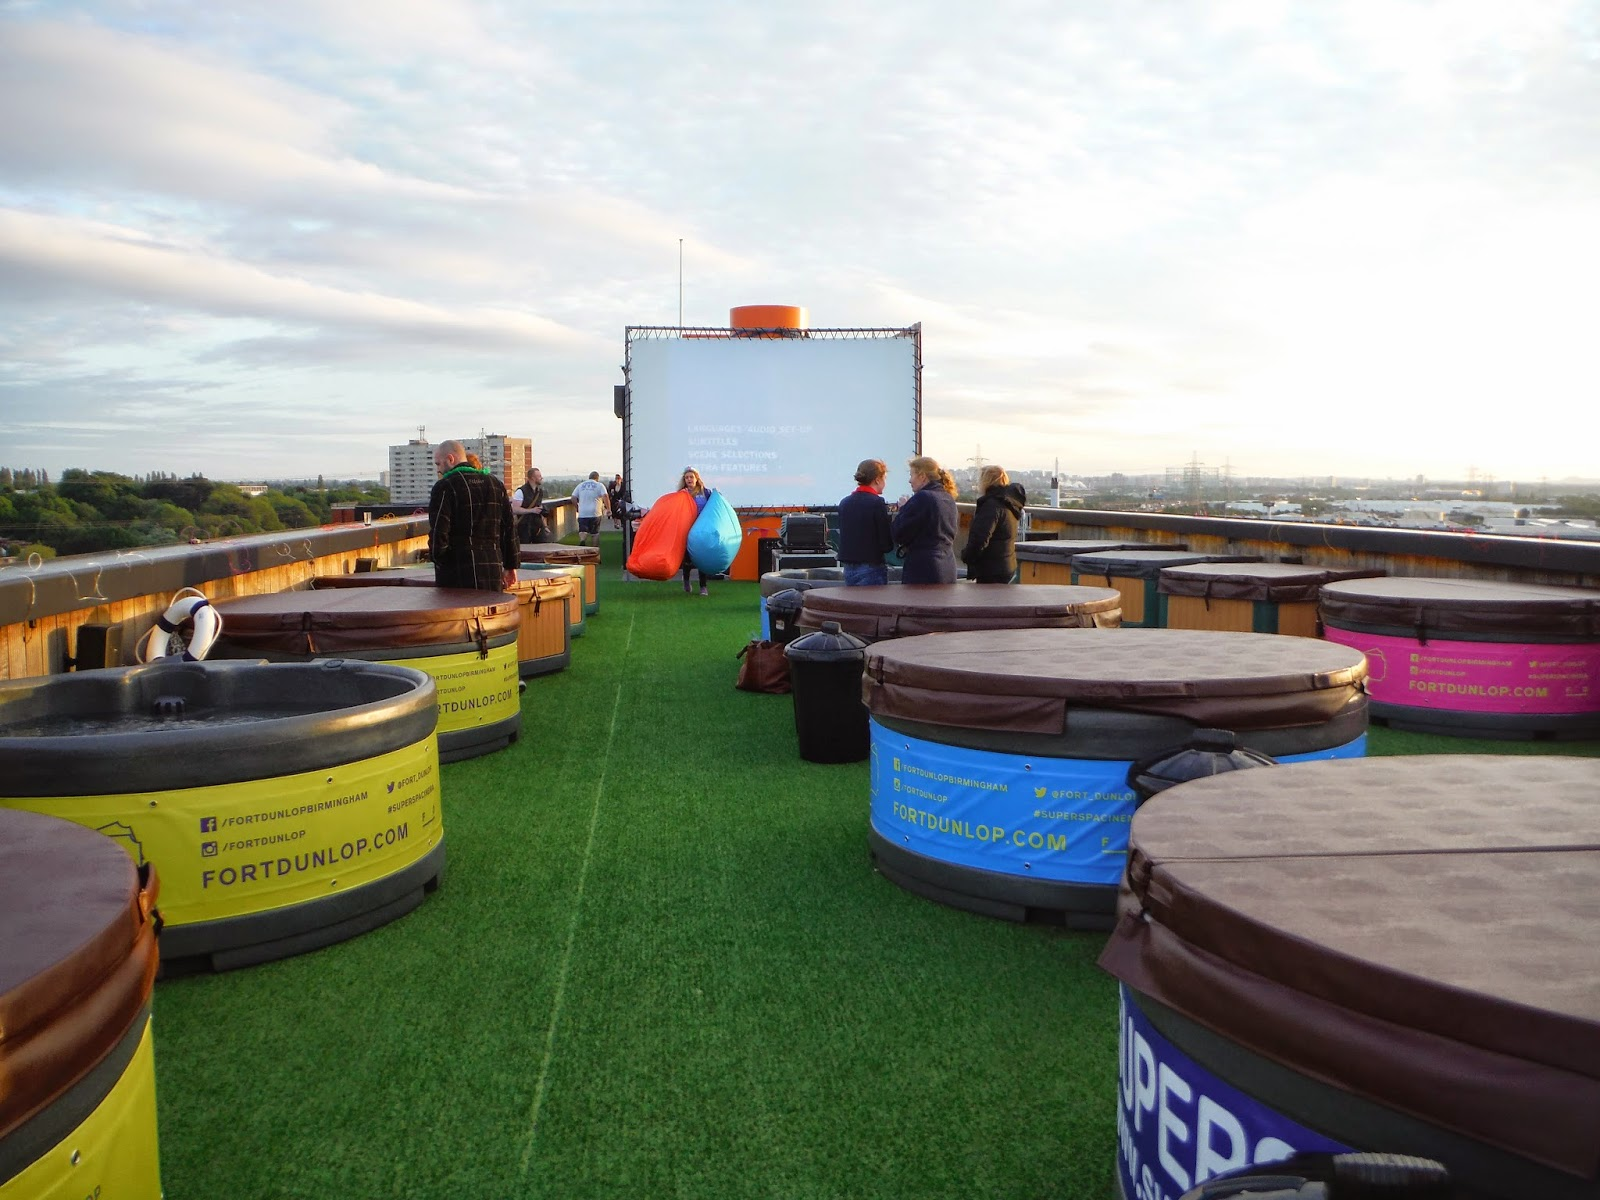 Standing at the back of the spa cinema. Multiple hot tubs can be seen in front of the outdoor cinema screen